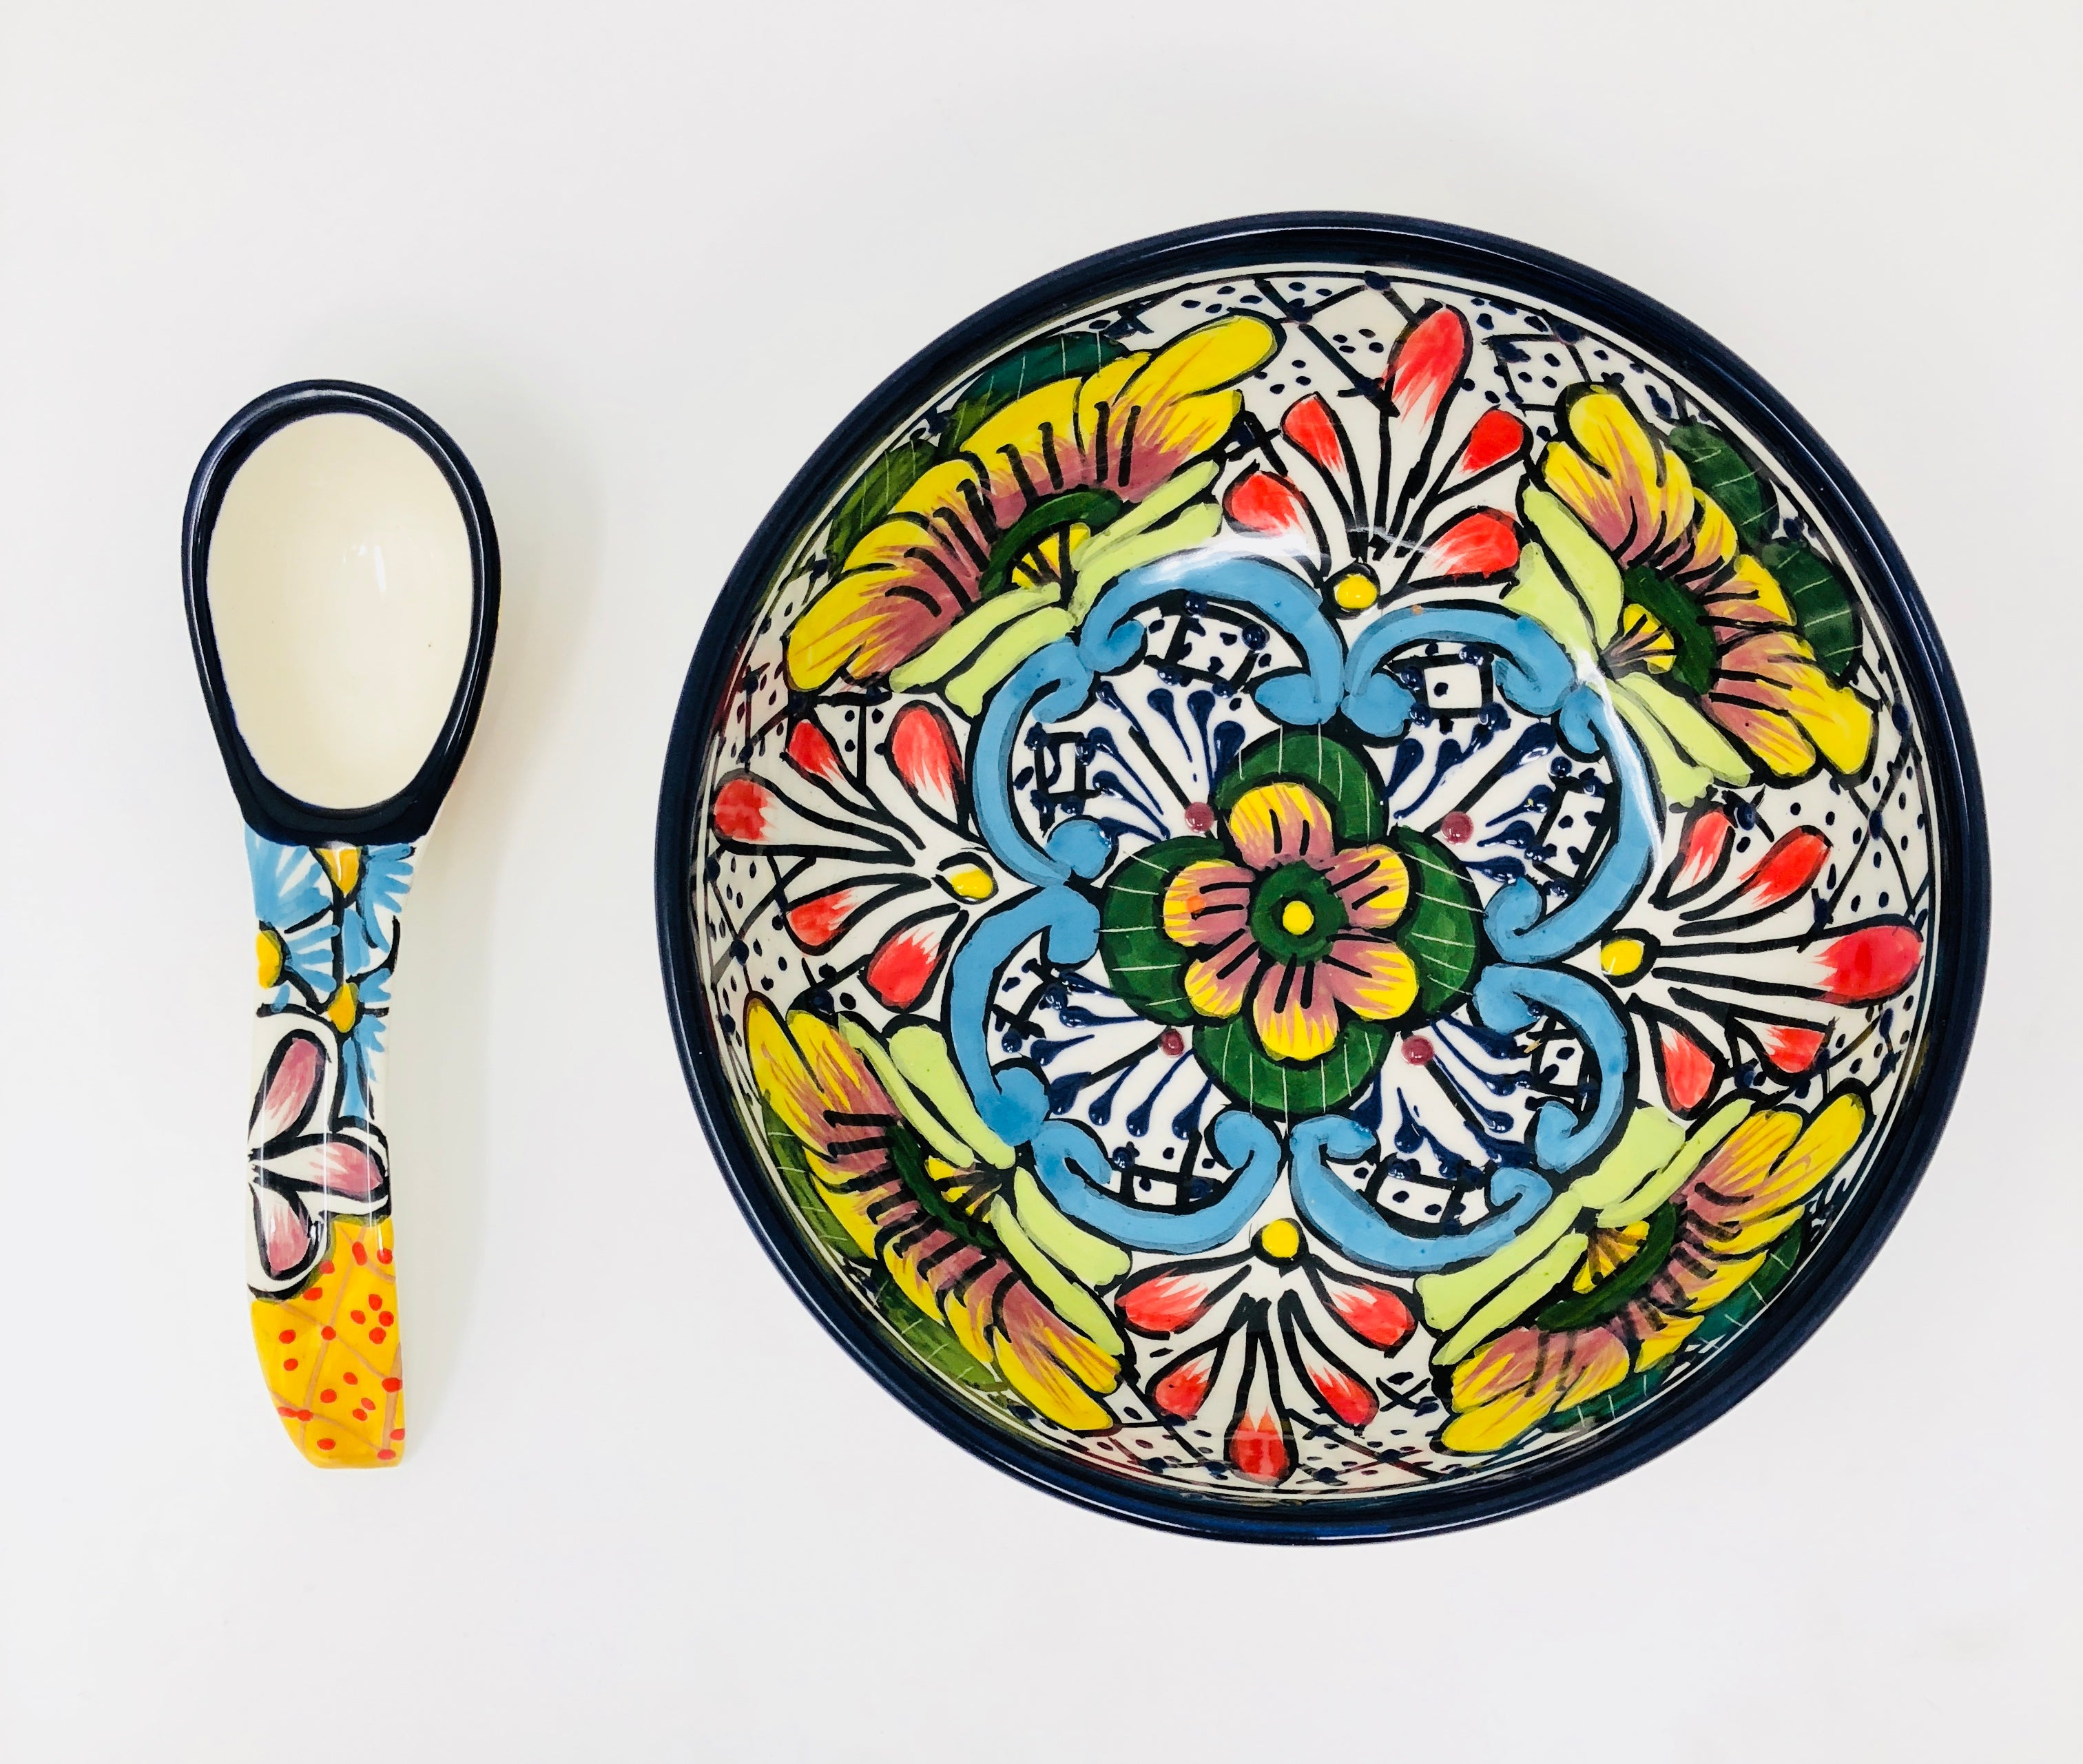 Talavera Molcajete Serving Bowl W/ Spoon